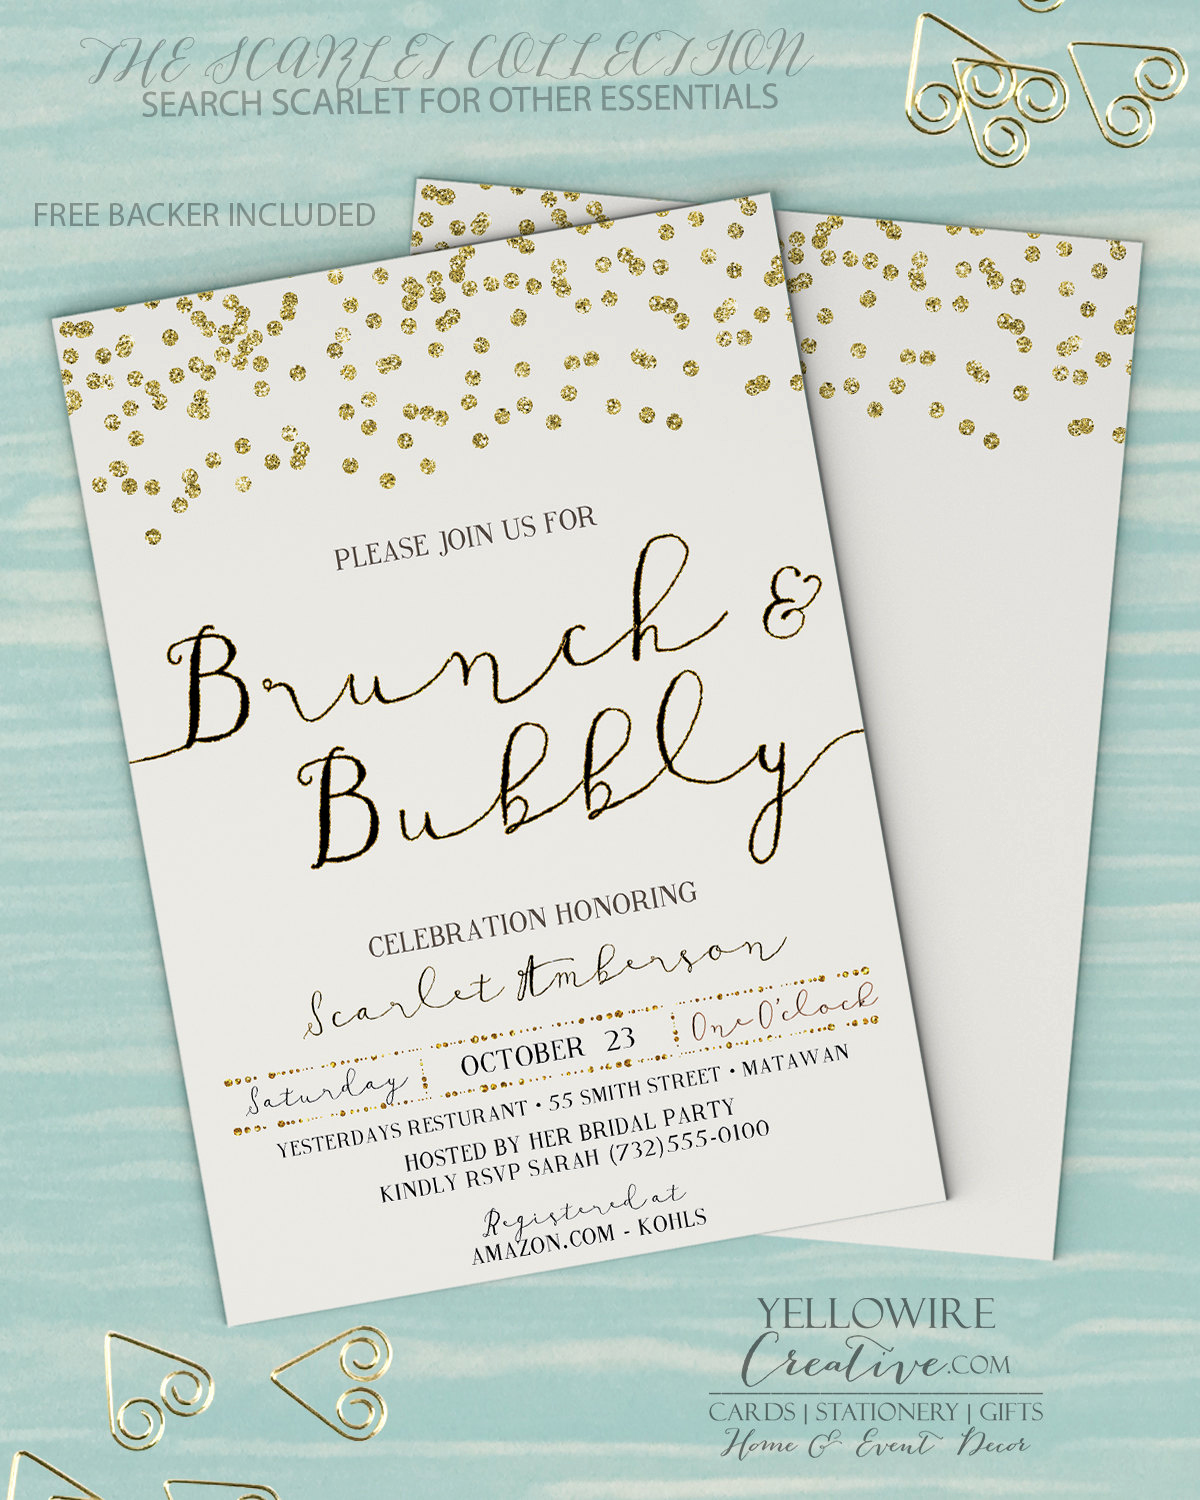 Bridal Shower Brunch Invitation Wording Awesome Brunch and Bubbly Invitation Bridal Brunch Invitation